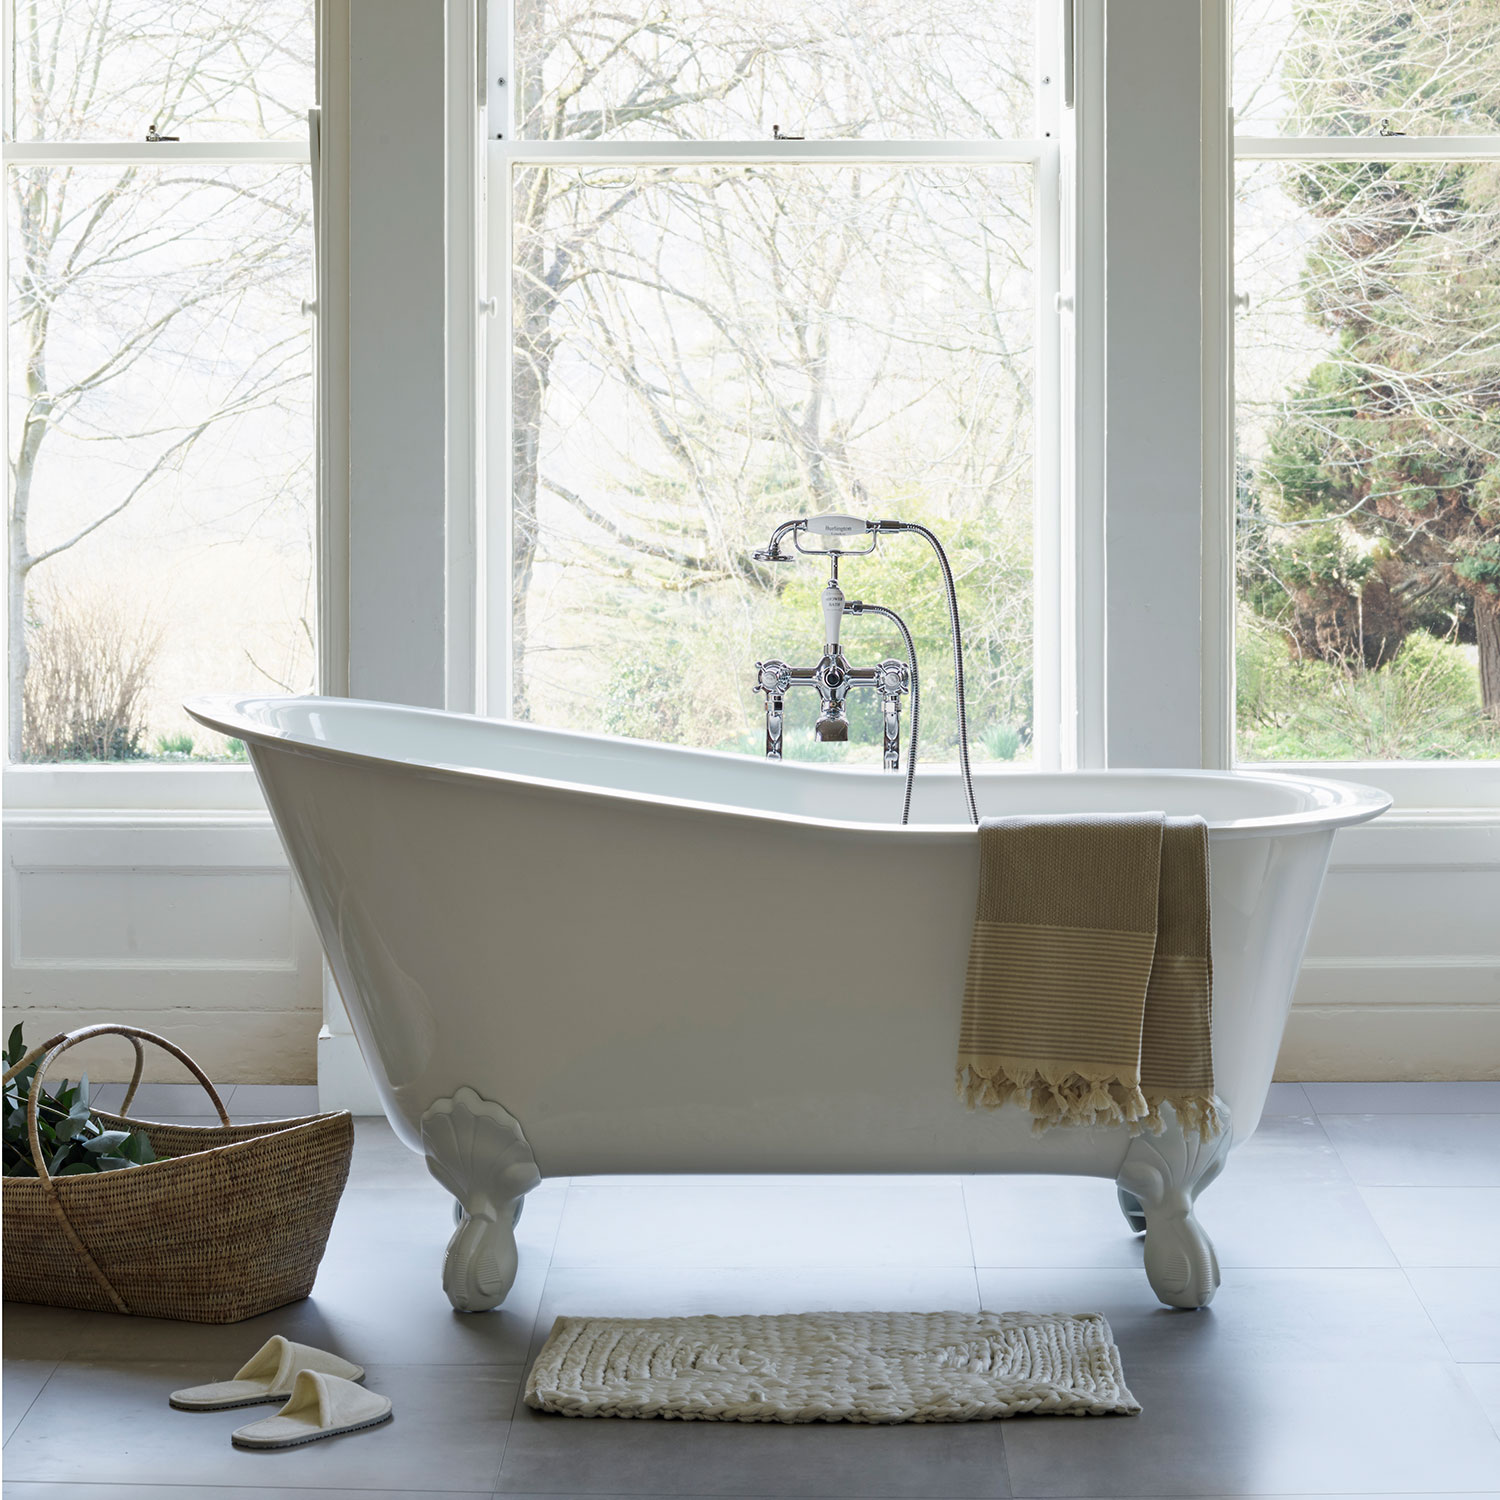 Clearwater Romano Grande Traditional Freestanding Slipper Bath 1690mm x 750mm - Clear Stone-0